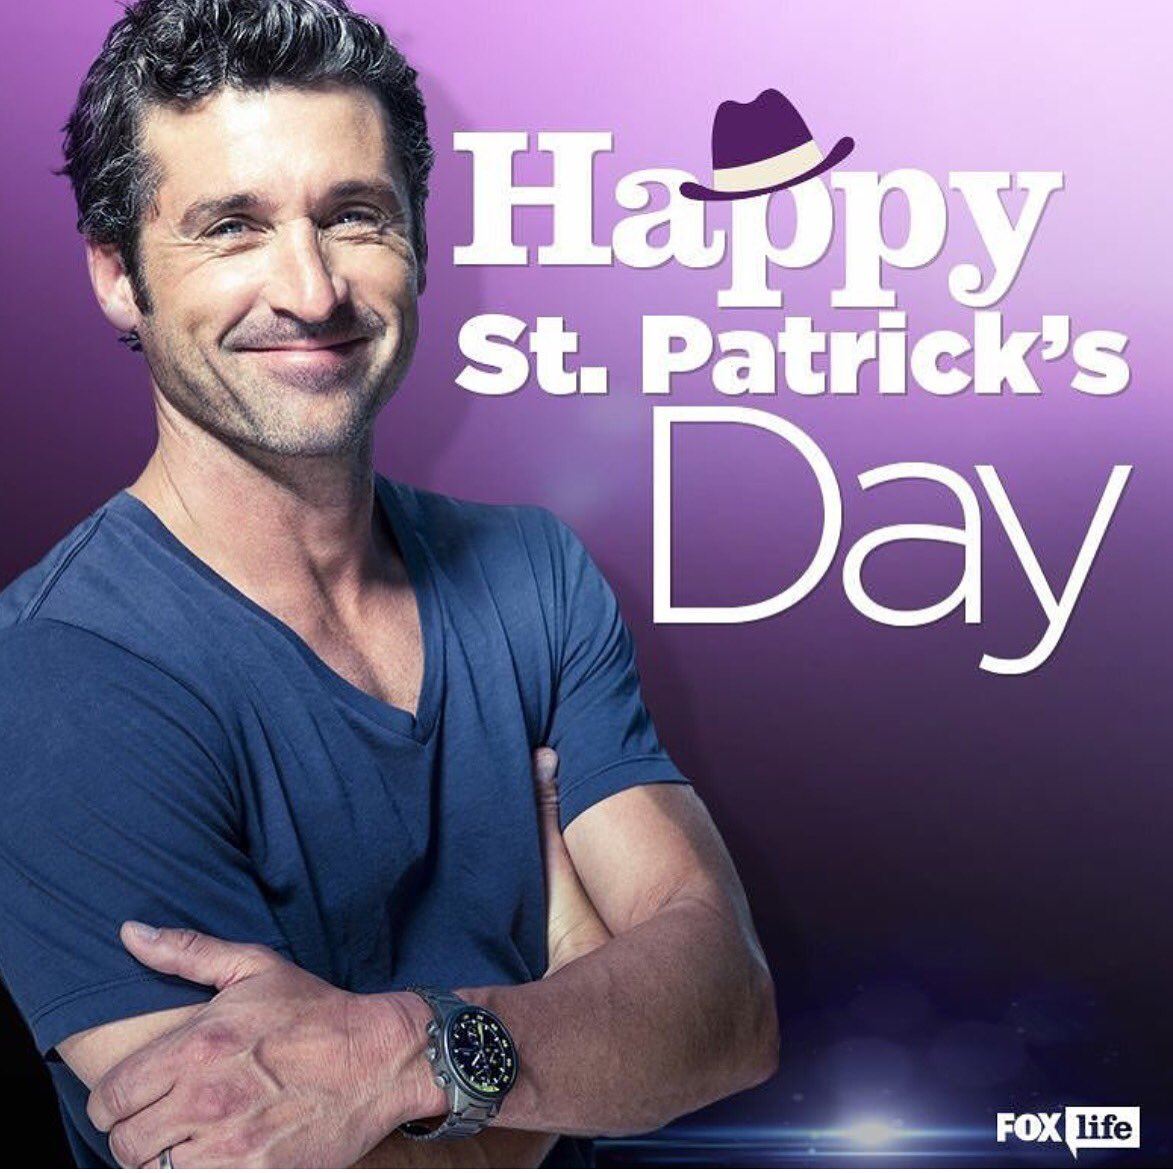 You're welcome. #StPatricksDay #patricksday #patrickdempsey https://t.co/Pq0rB1yhNk